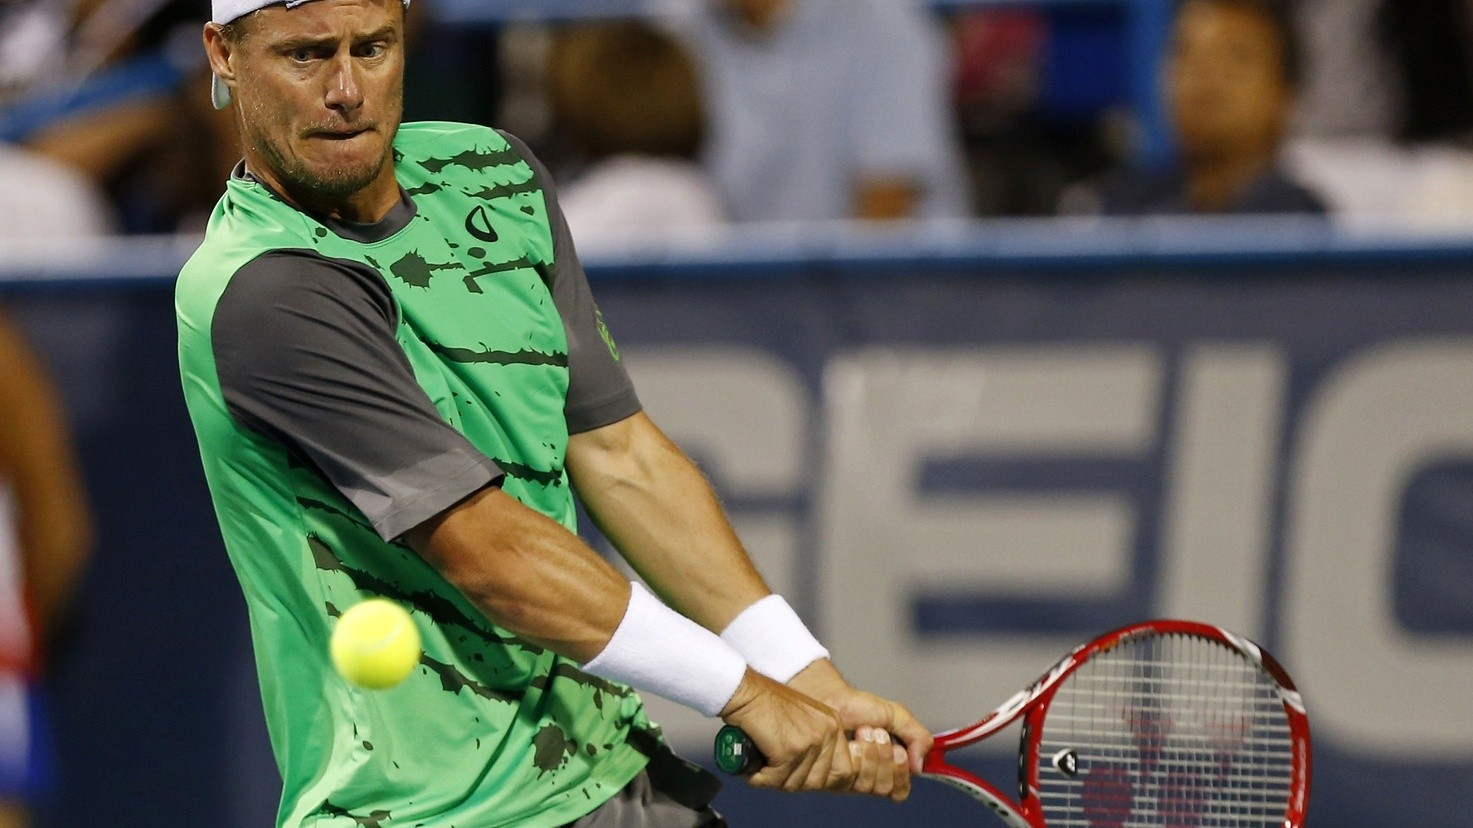 Did Lleyton Hewitt Fix Matches or Does Betting Data Require More